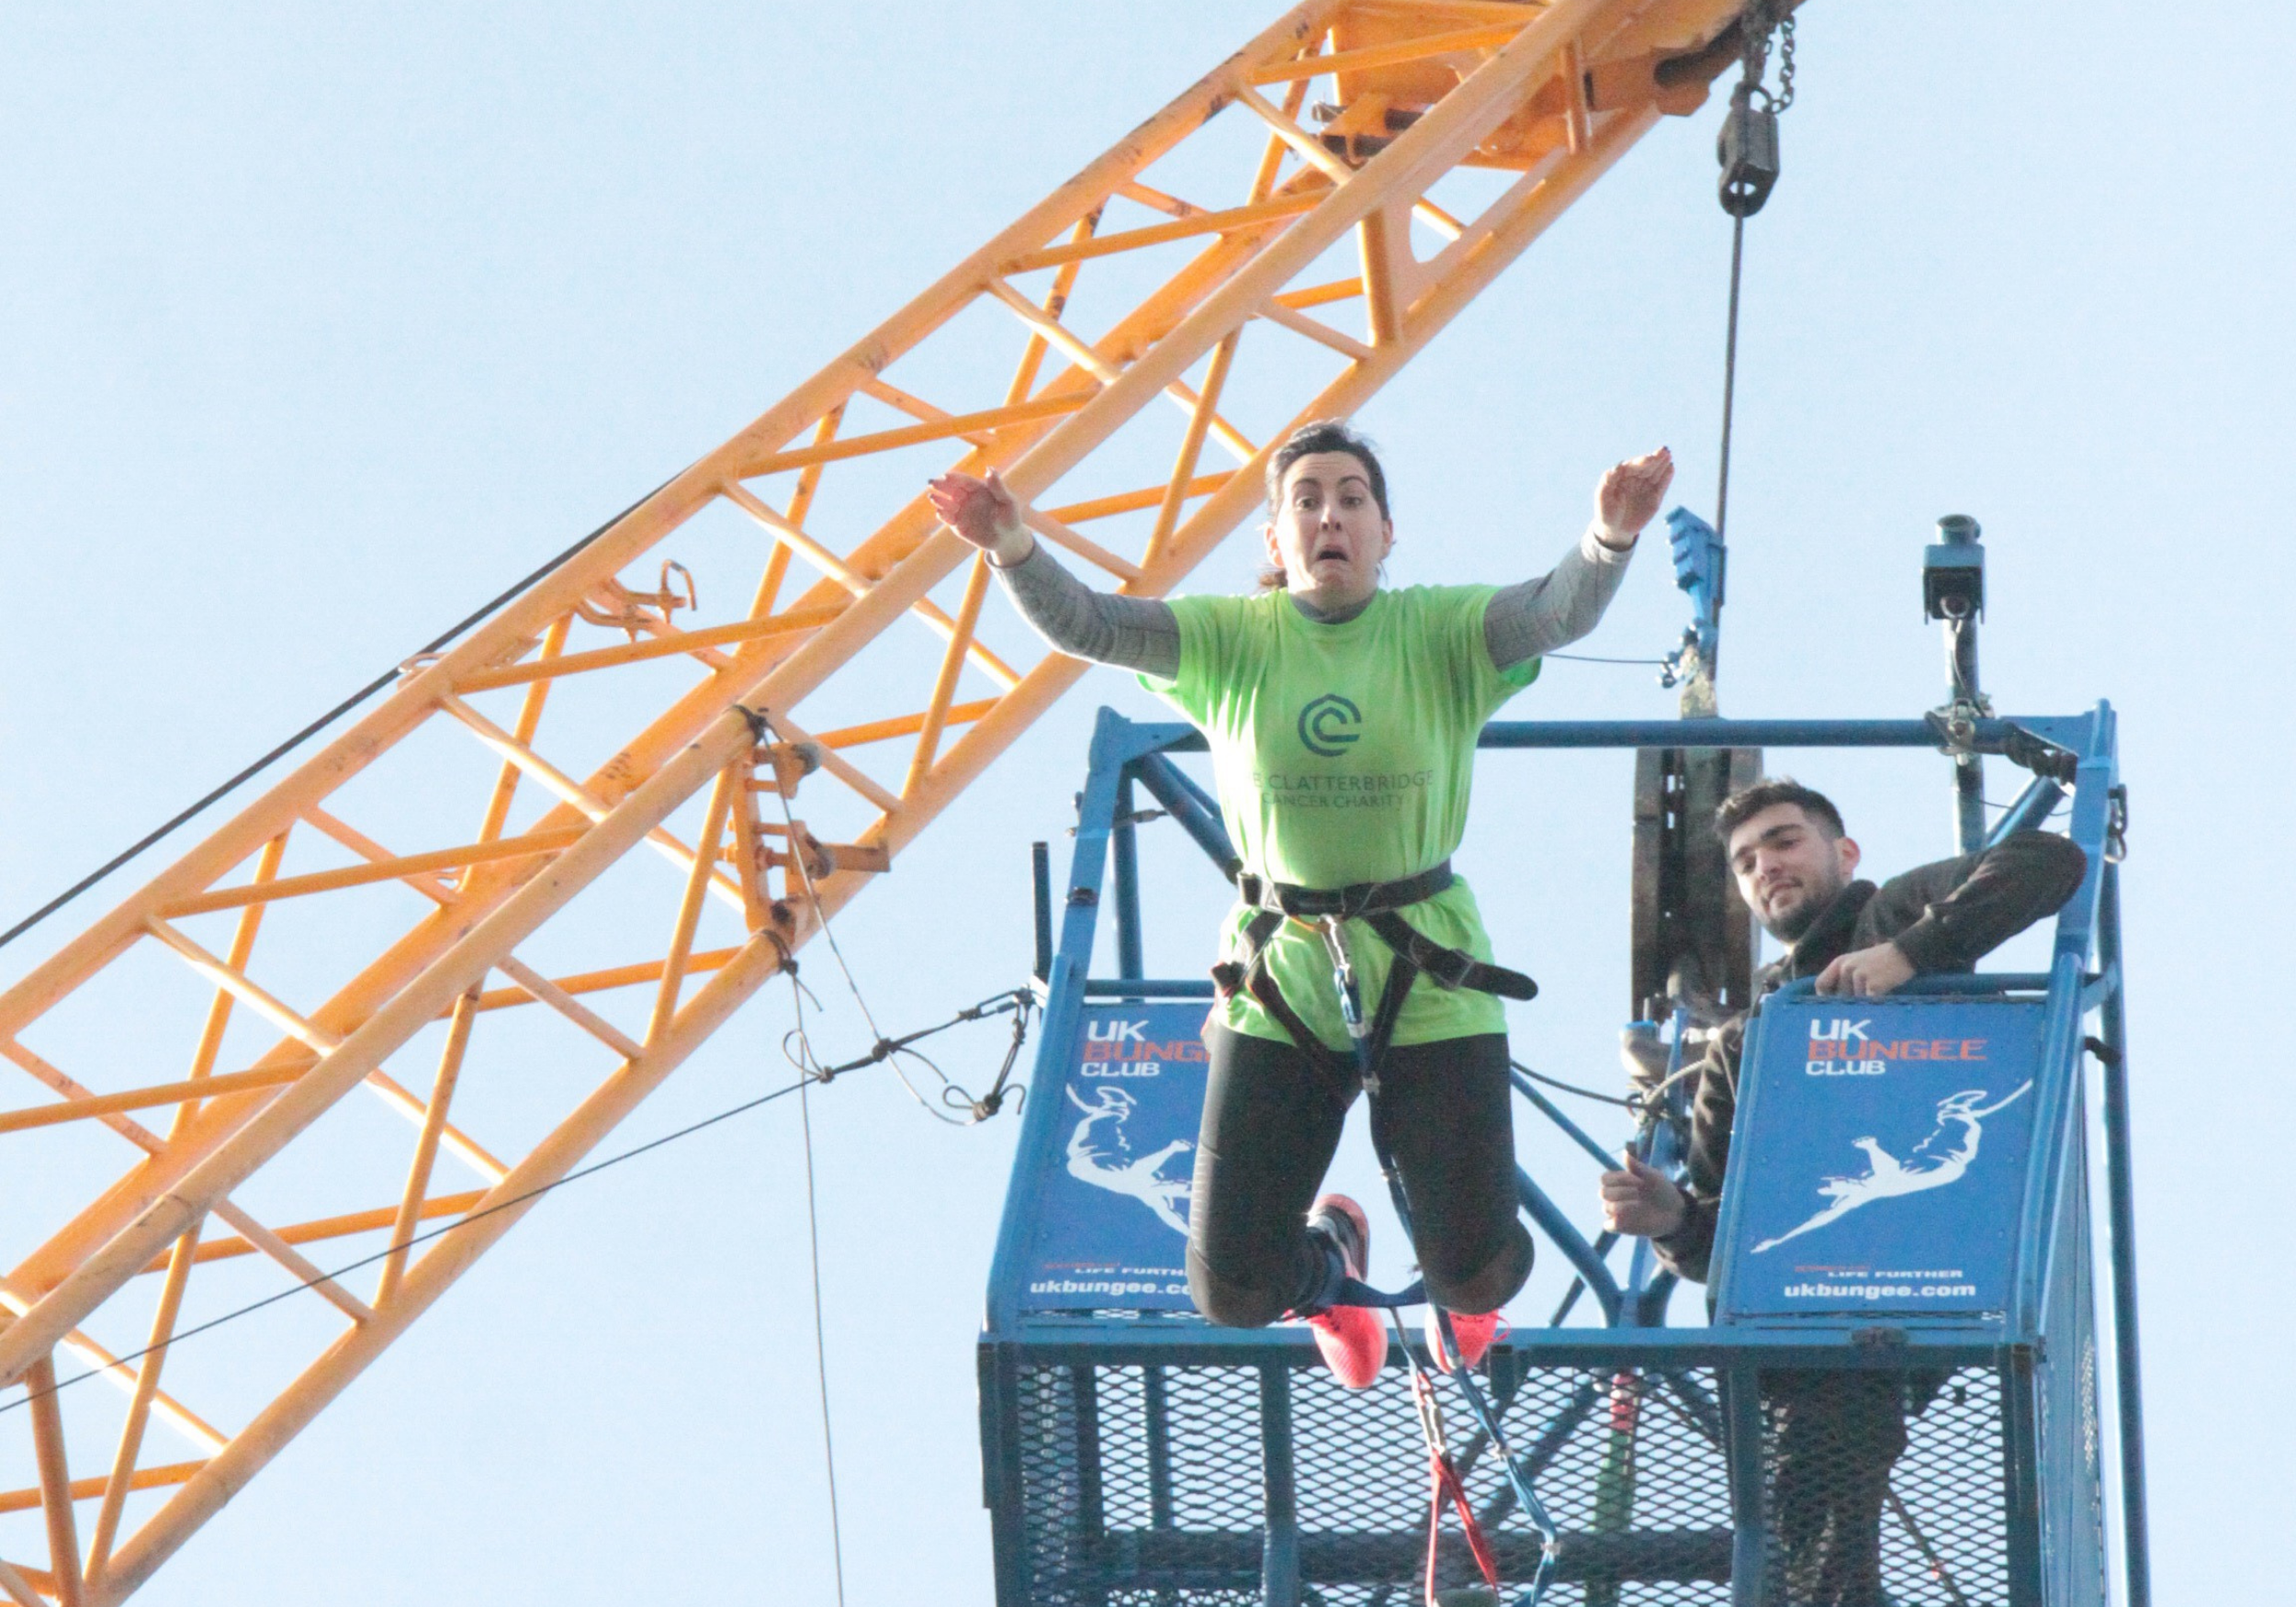 Charity Website Images - Bungee.png